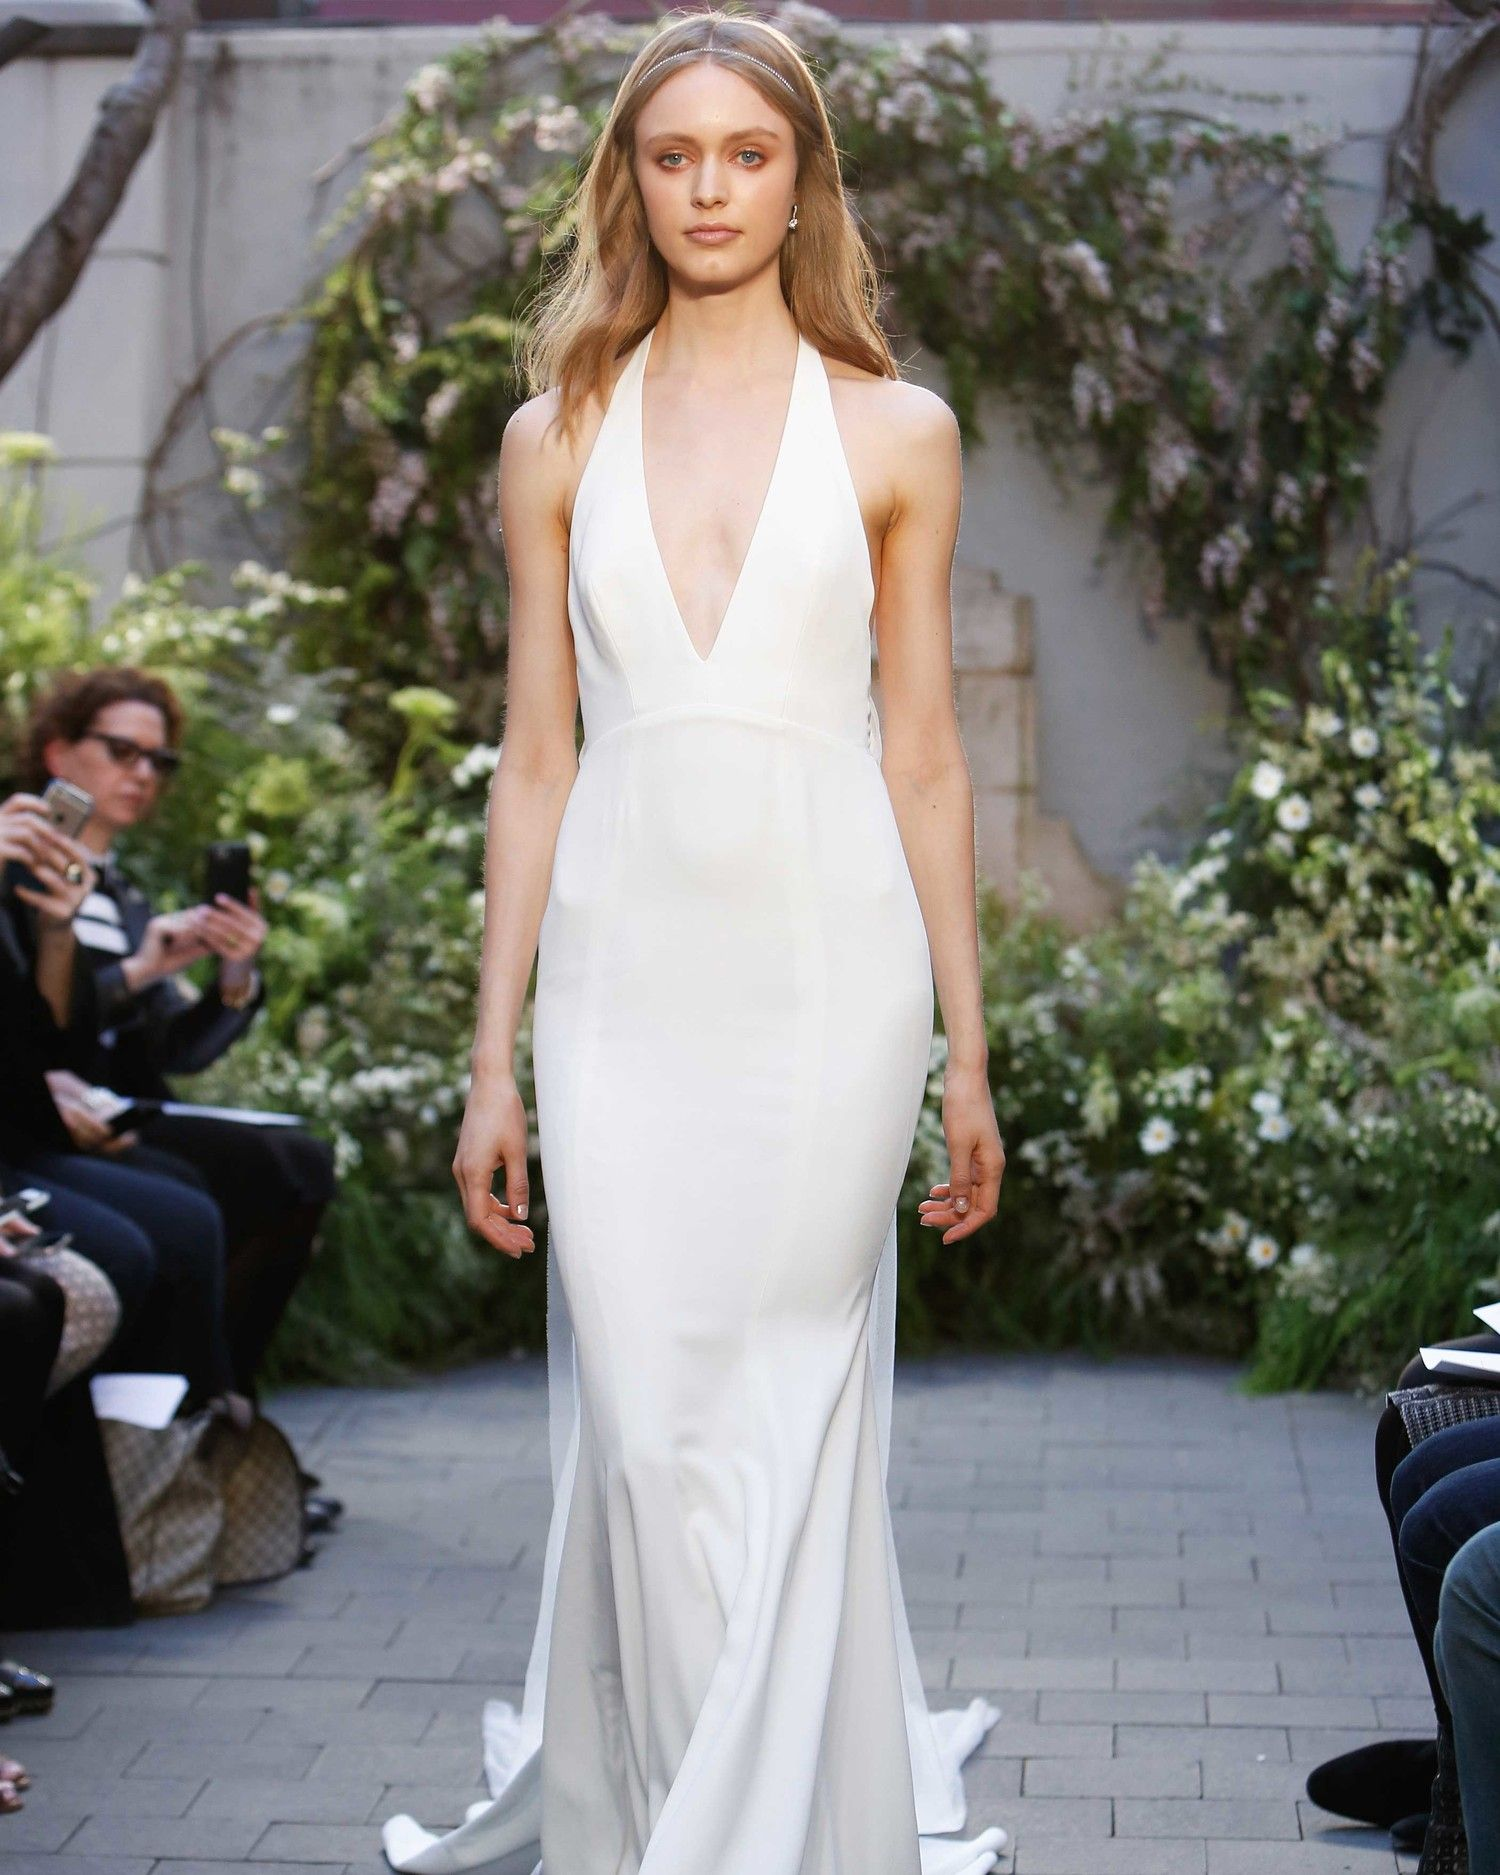 Marlowe A Silk White Crepe Halter Gown With Plunging V Neck From Monique Lhuillier Spring 2017 Collection Boasts Simple Tulle Train